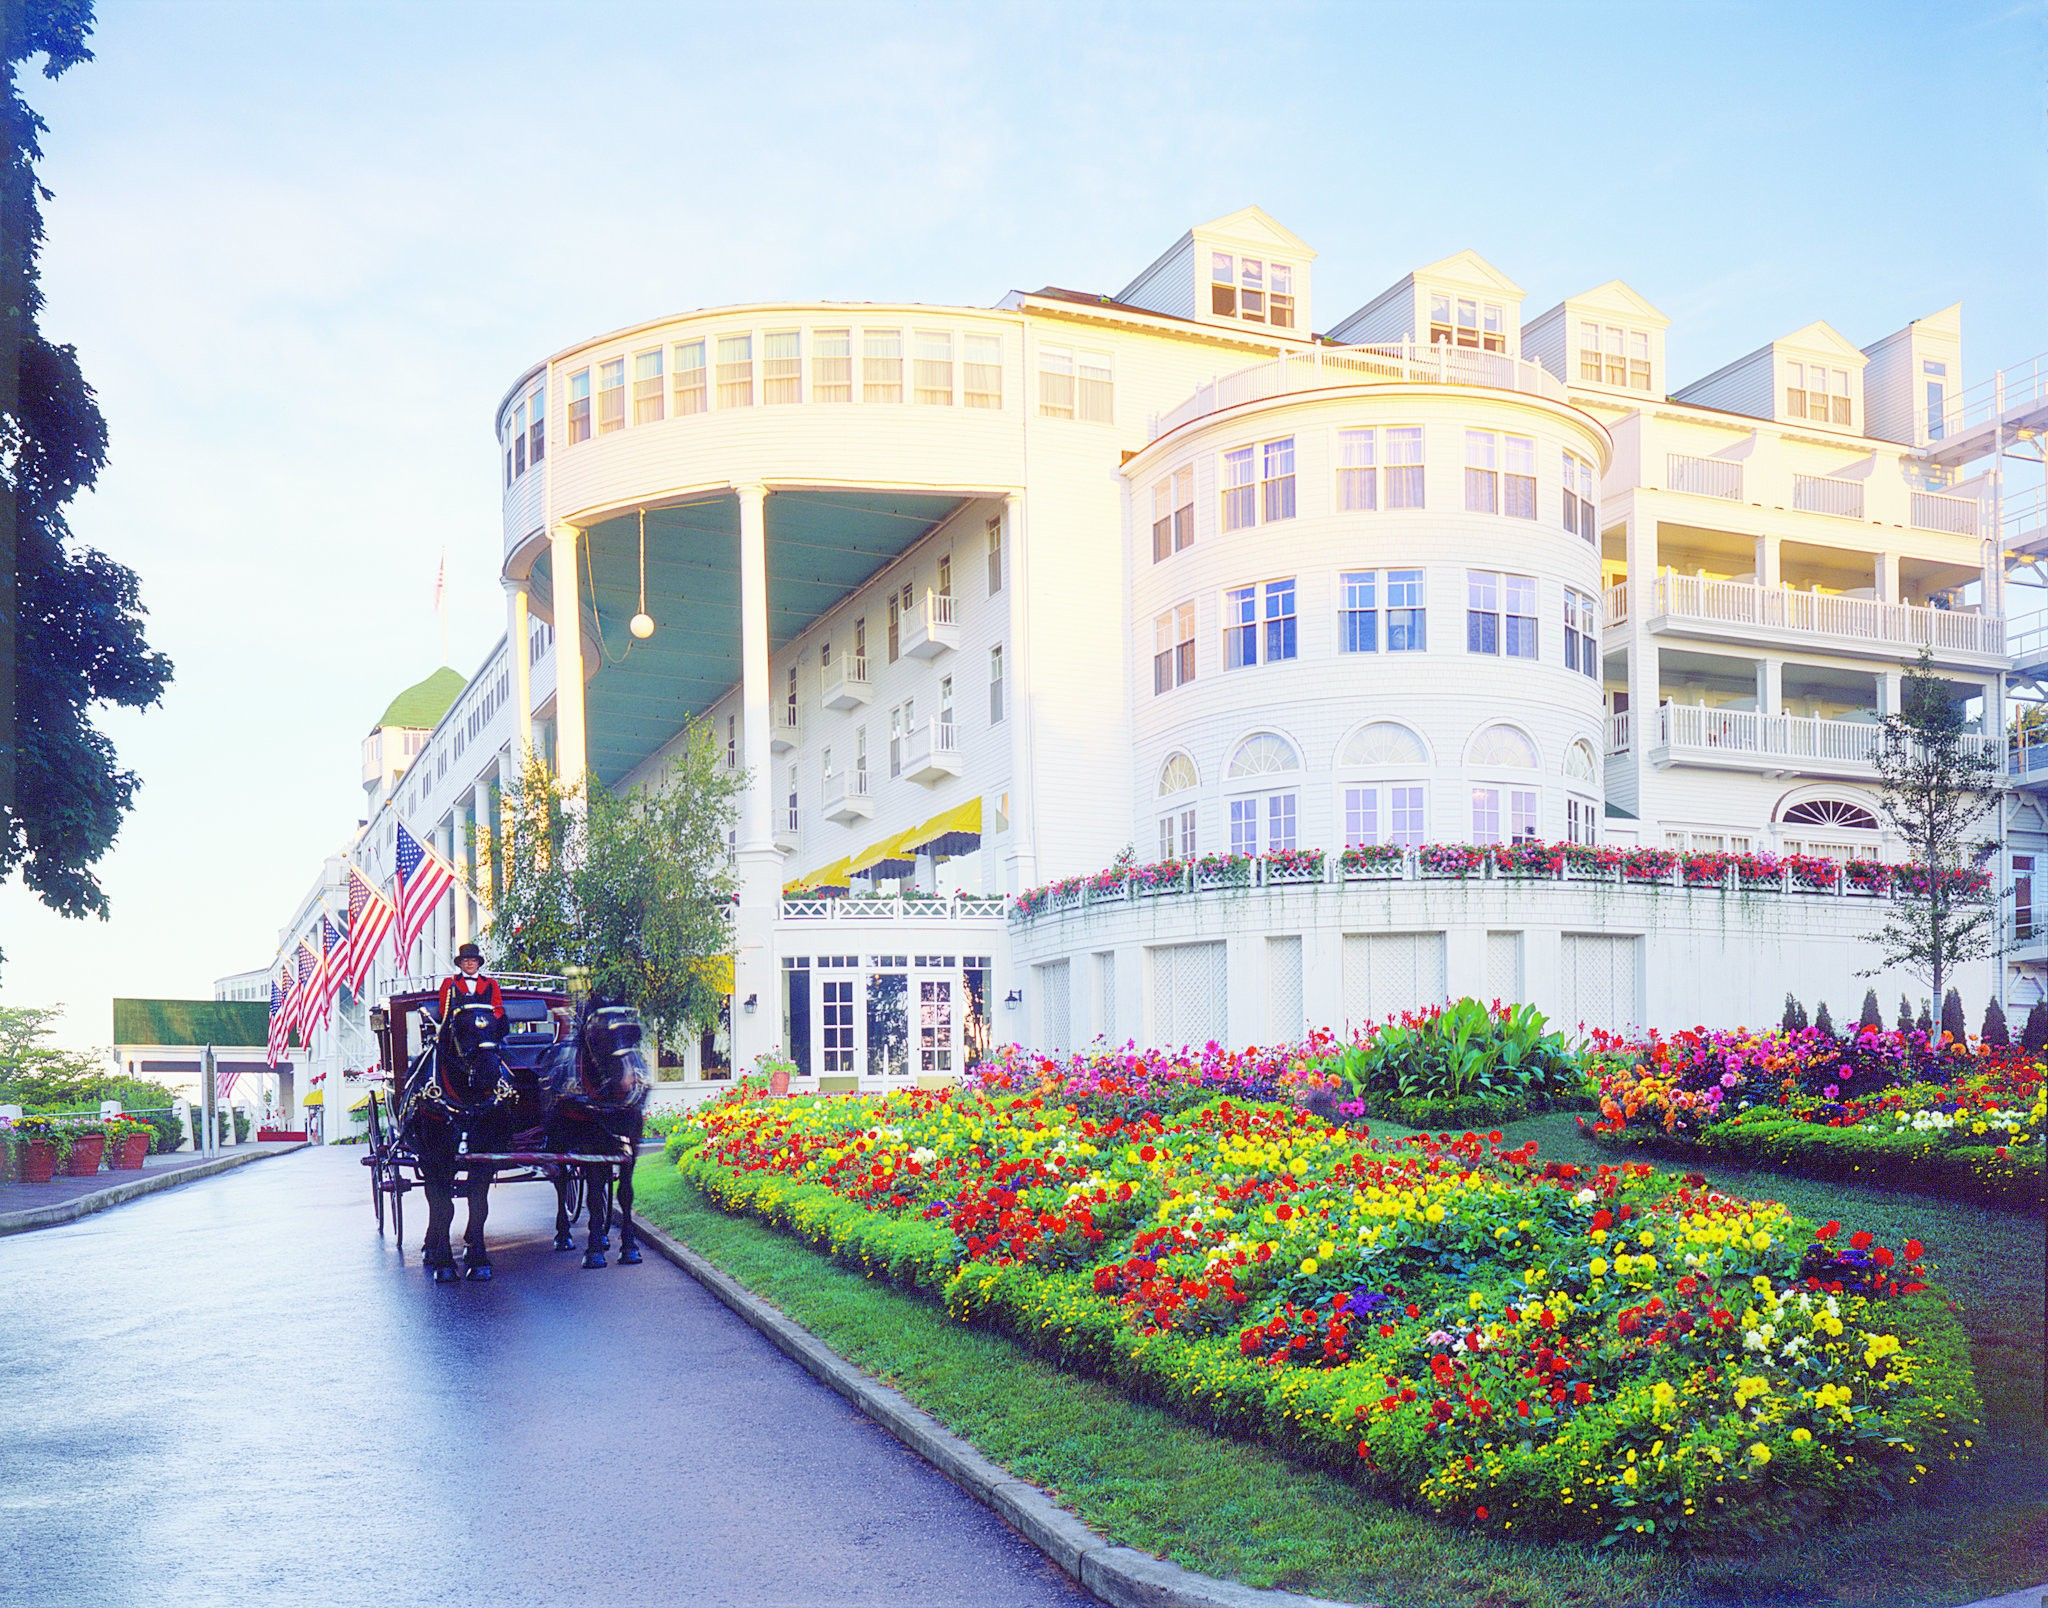 Grand Hotel Offers Special Room Rates To Celebrate Michigan Mlive Com